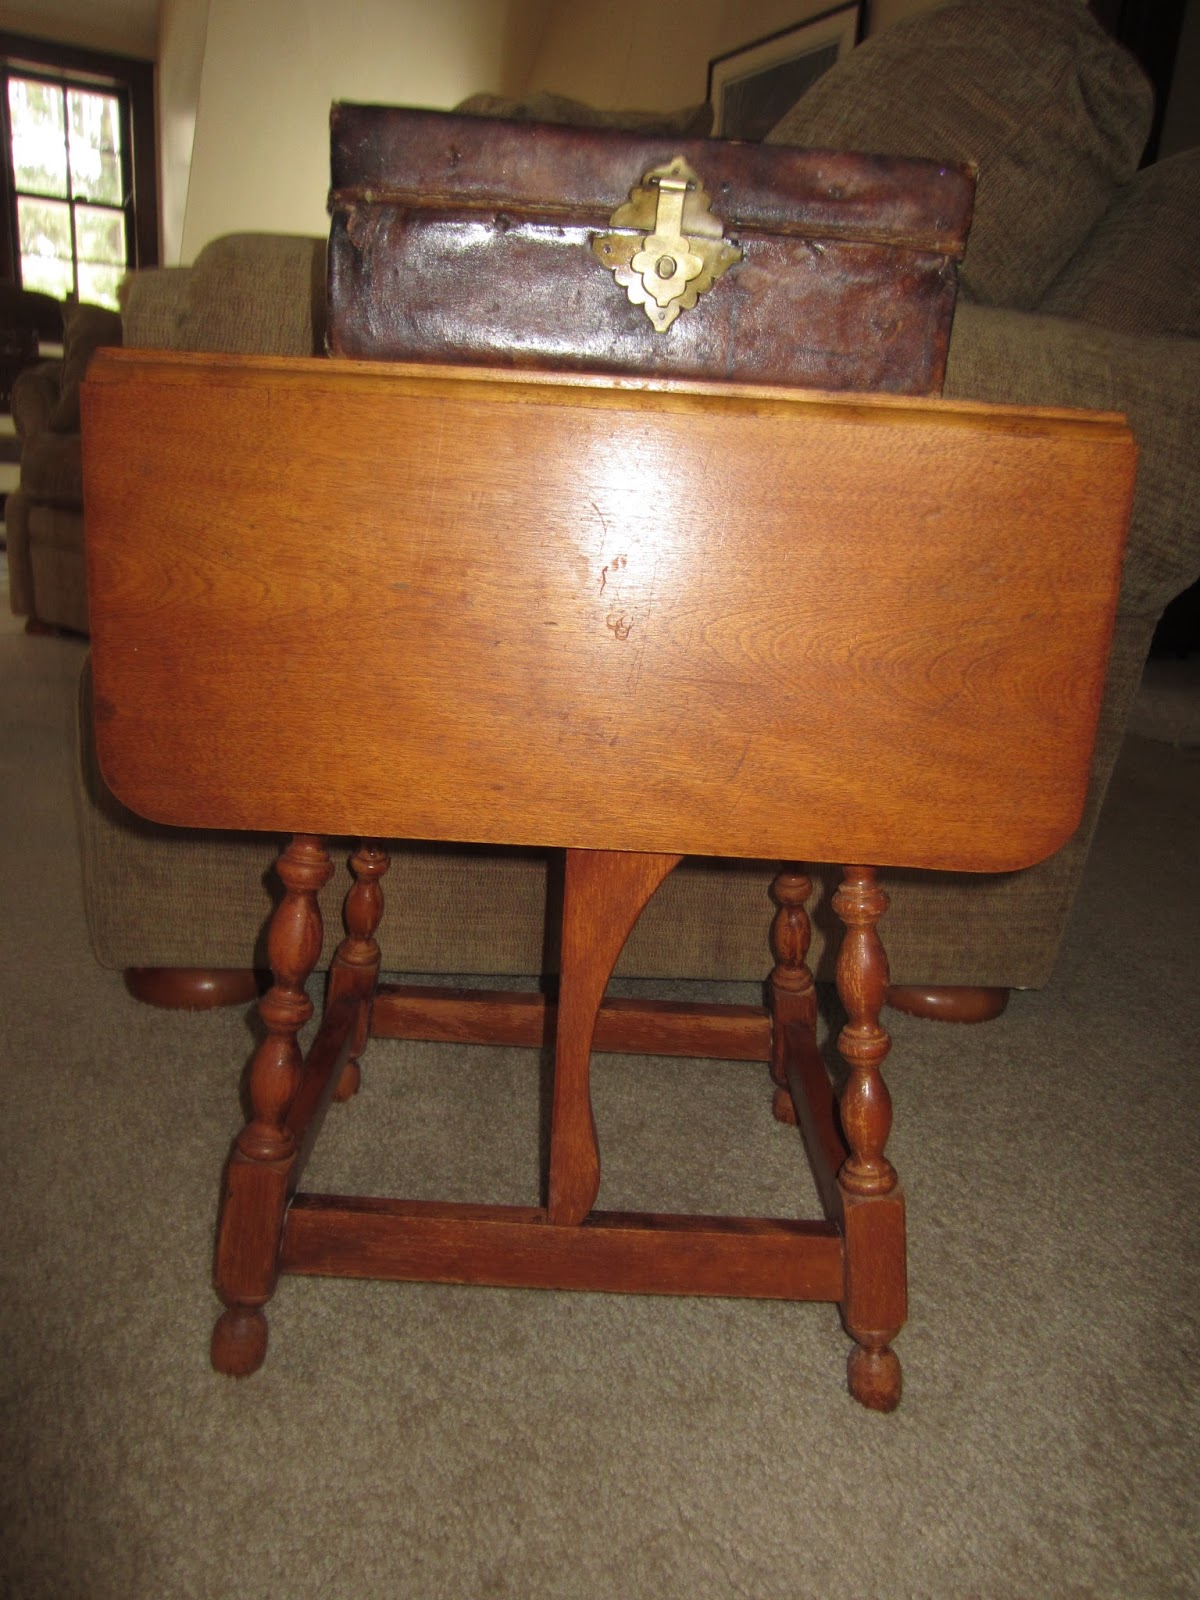 Here are 7 reasons for buying vintage and antique furniture. I realize I'm  probably preaching to the choir here but... Here they are: - HOB NOBBERS: 7 REASONS TO BUY ANTIQUE AND VINTAGE FURNITURE